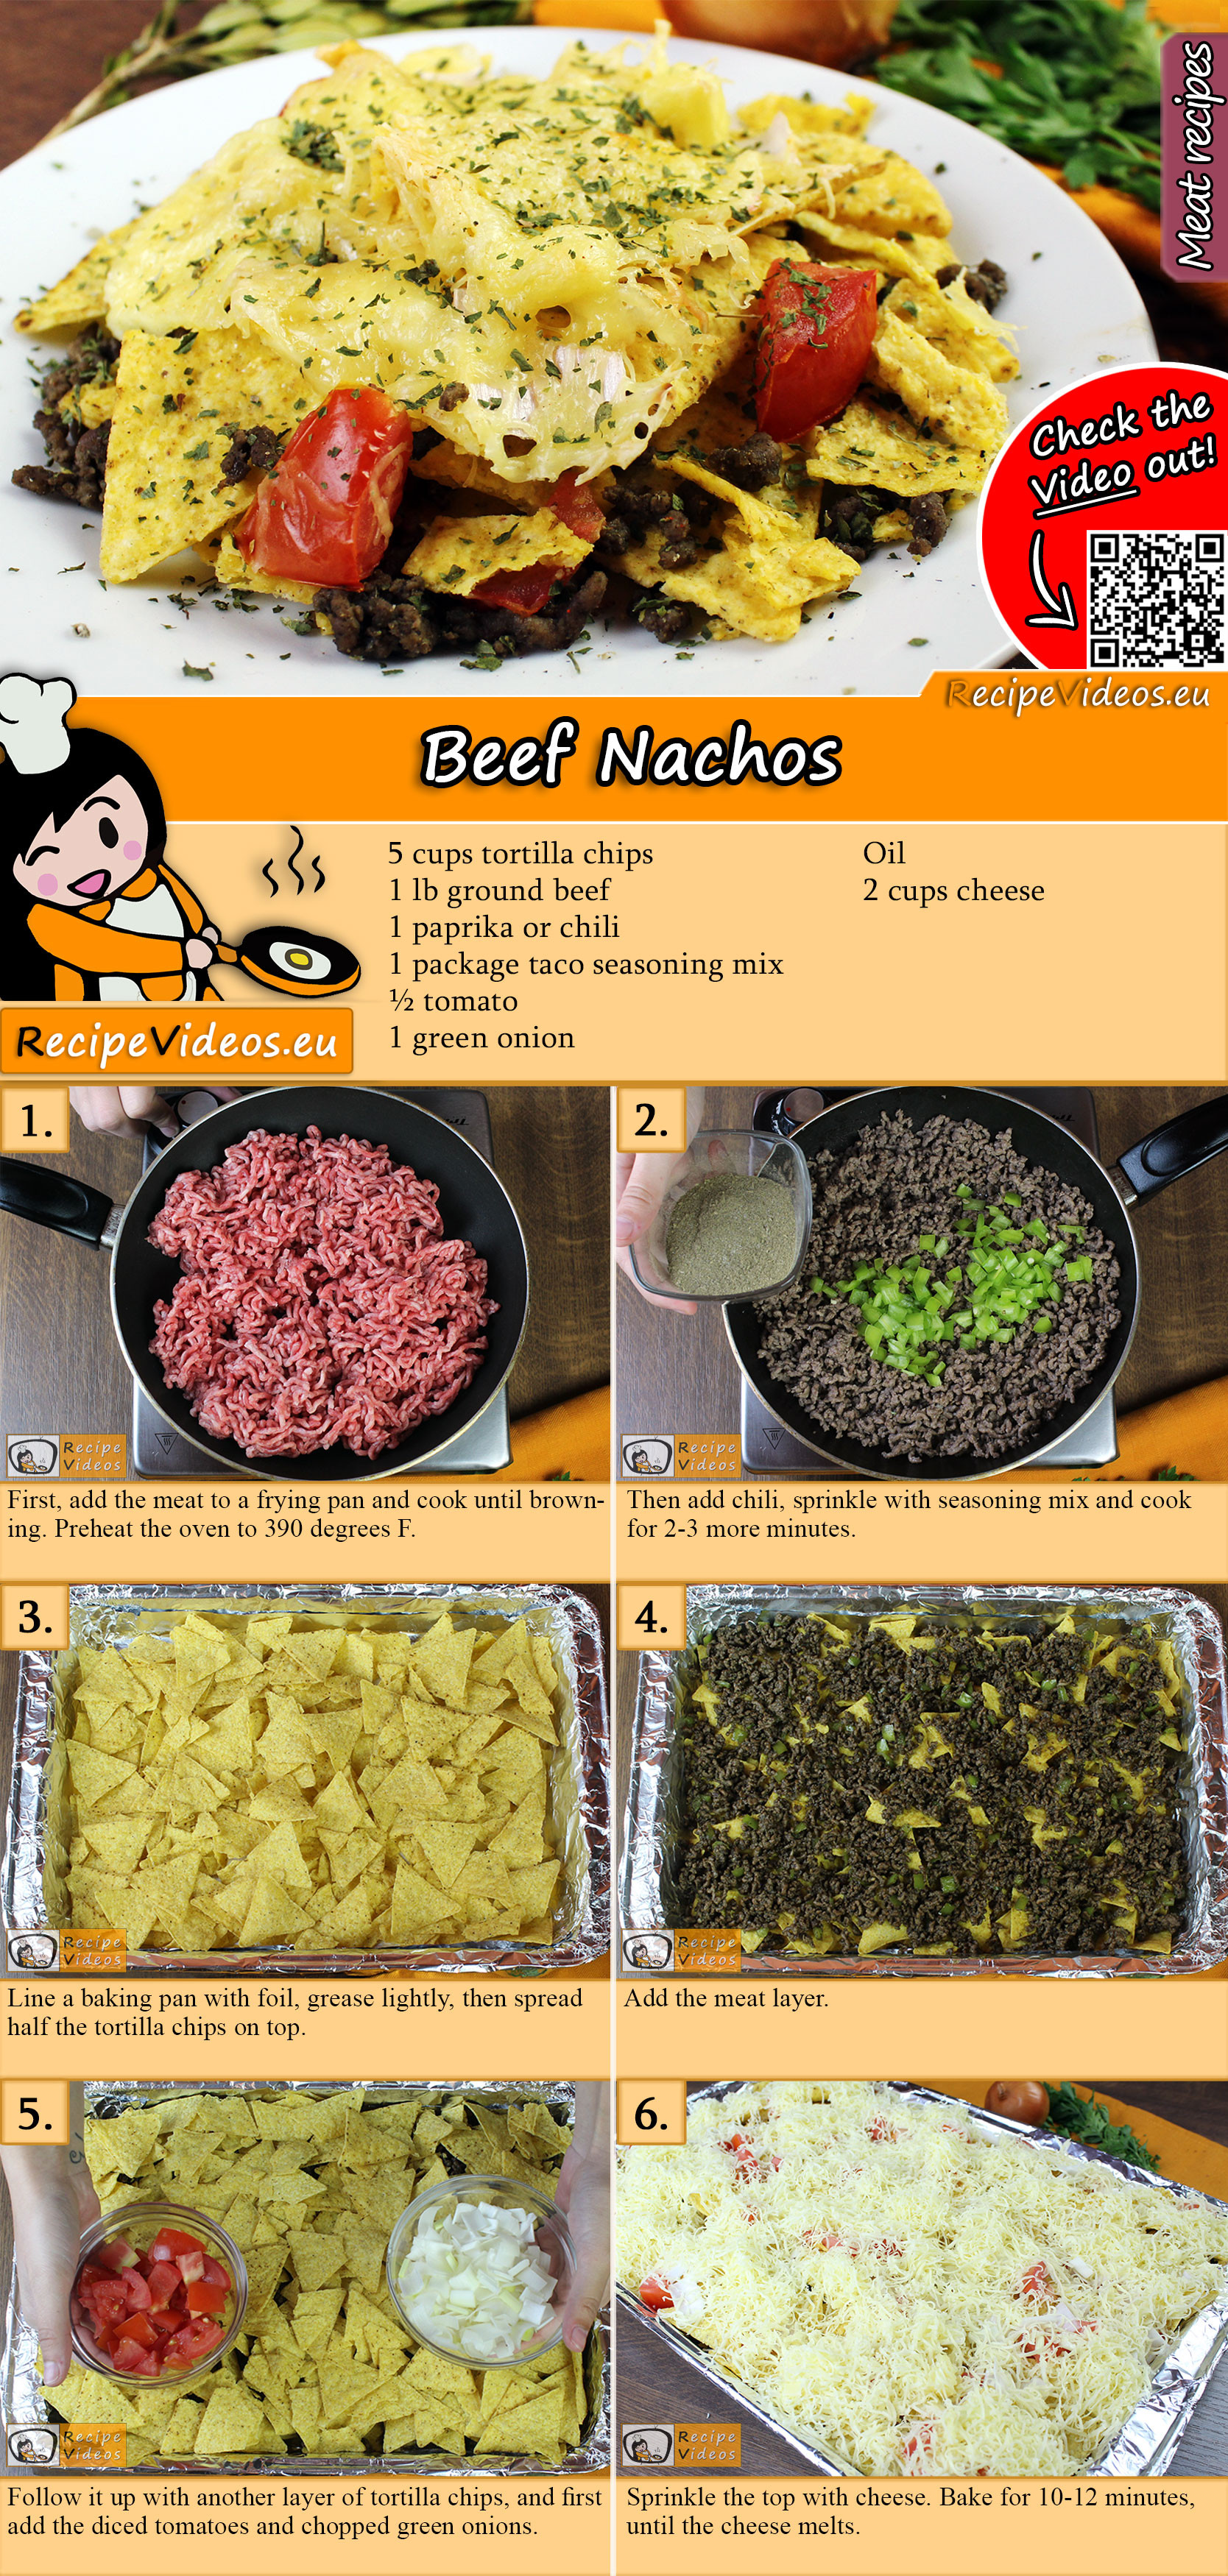 Beef Nachos recipe with video